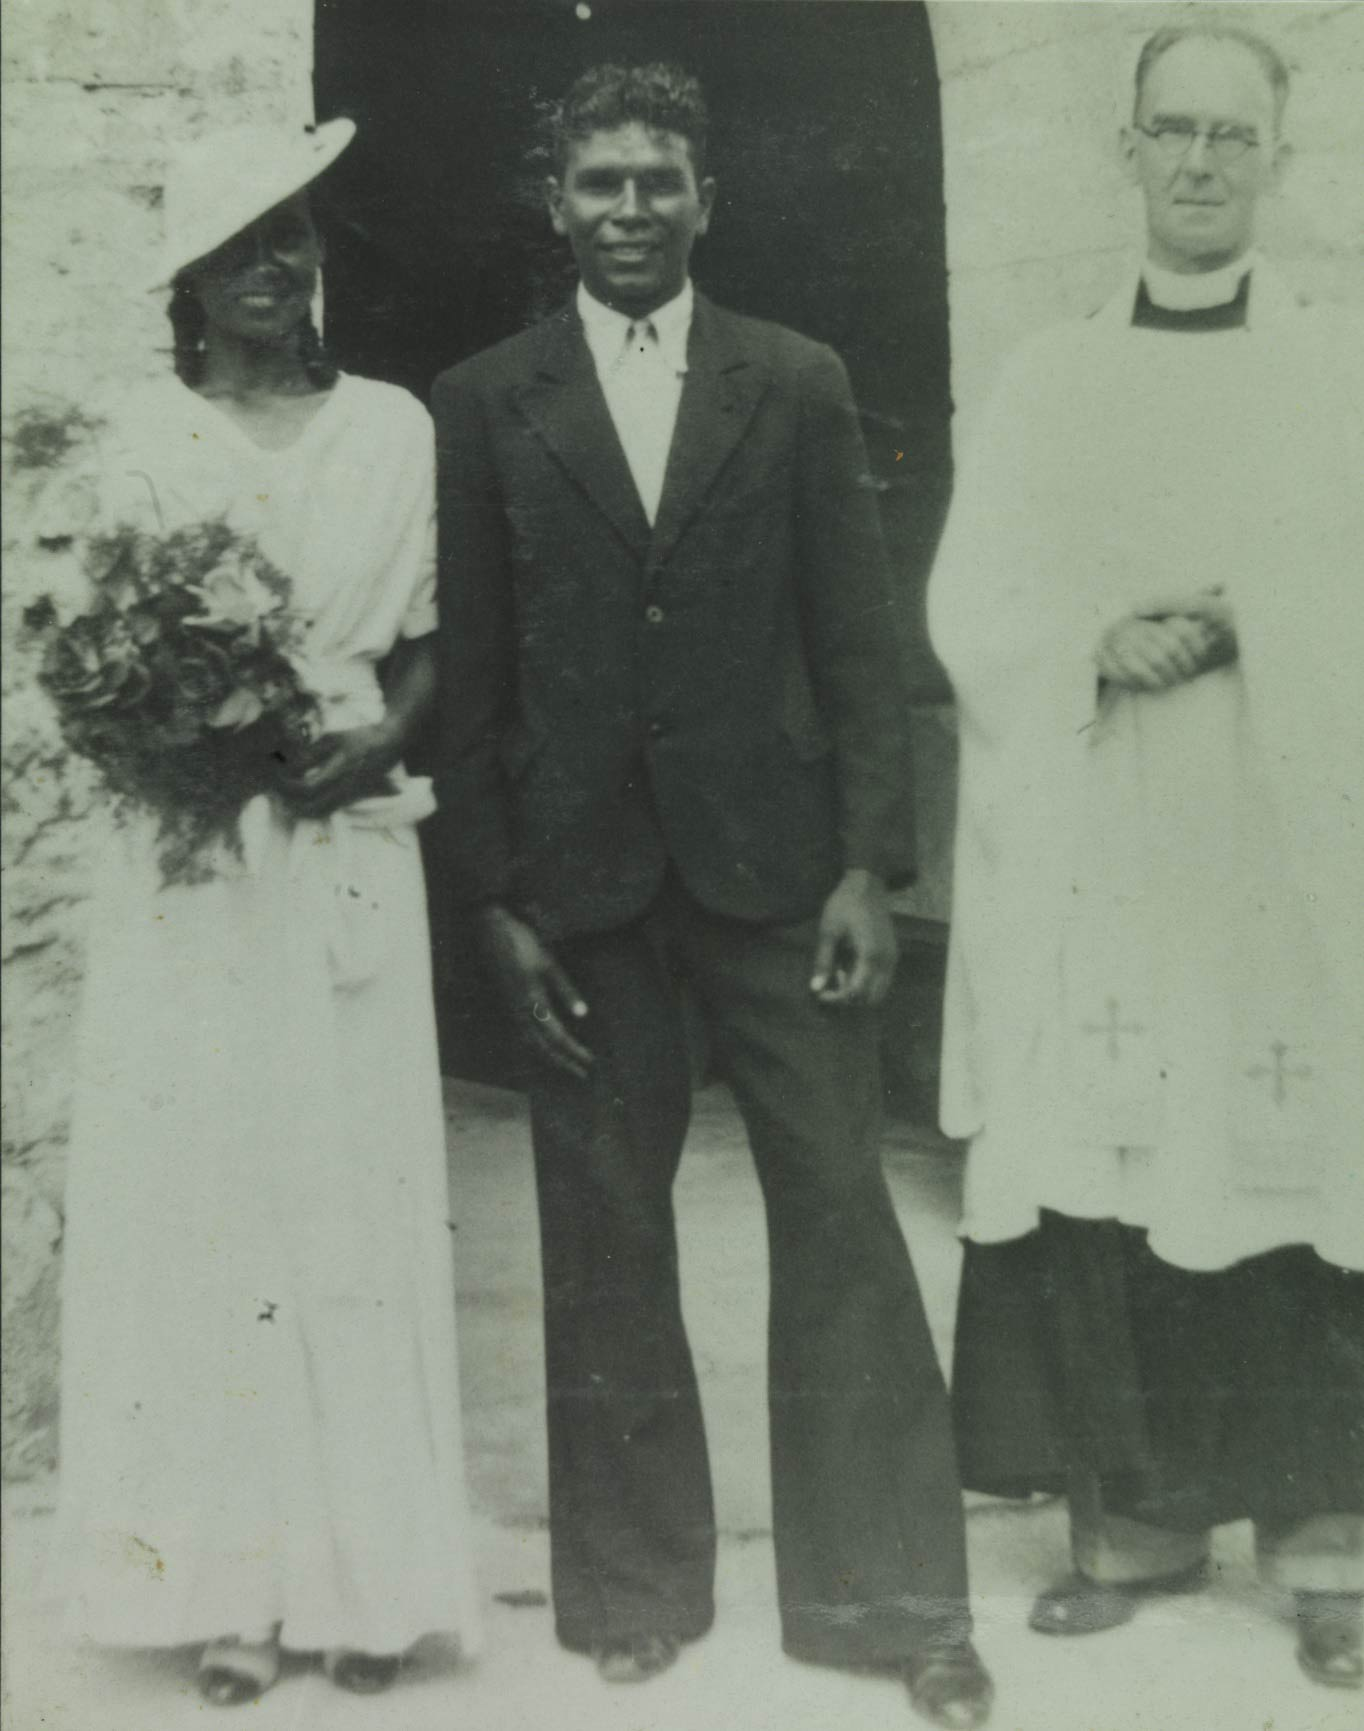 Moore River Native Settlement marriage of Glasys Gilligan and Artur Prosser